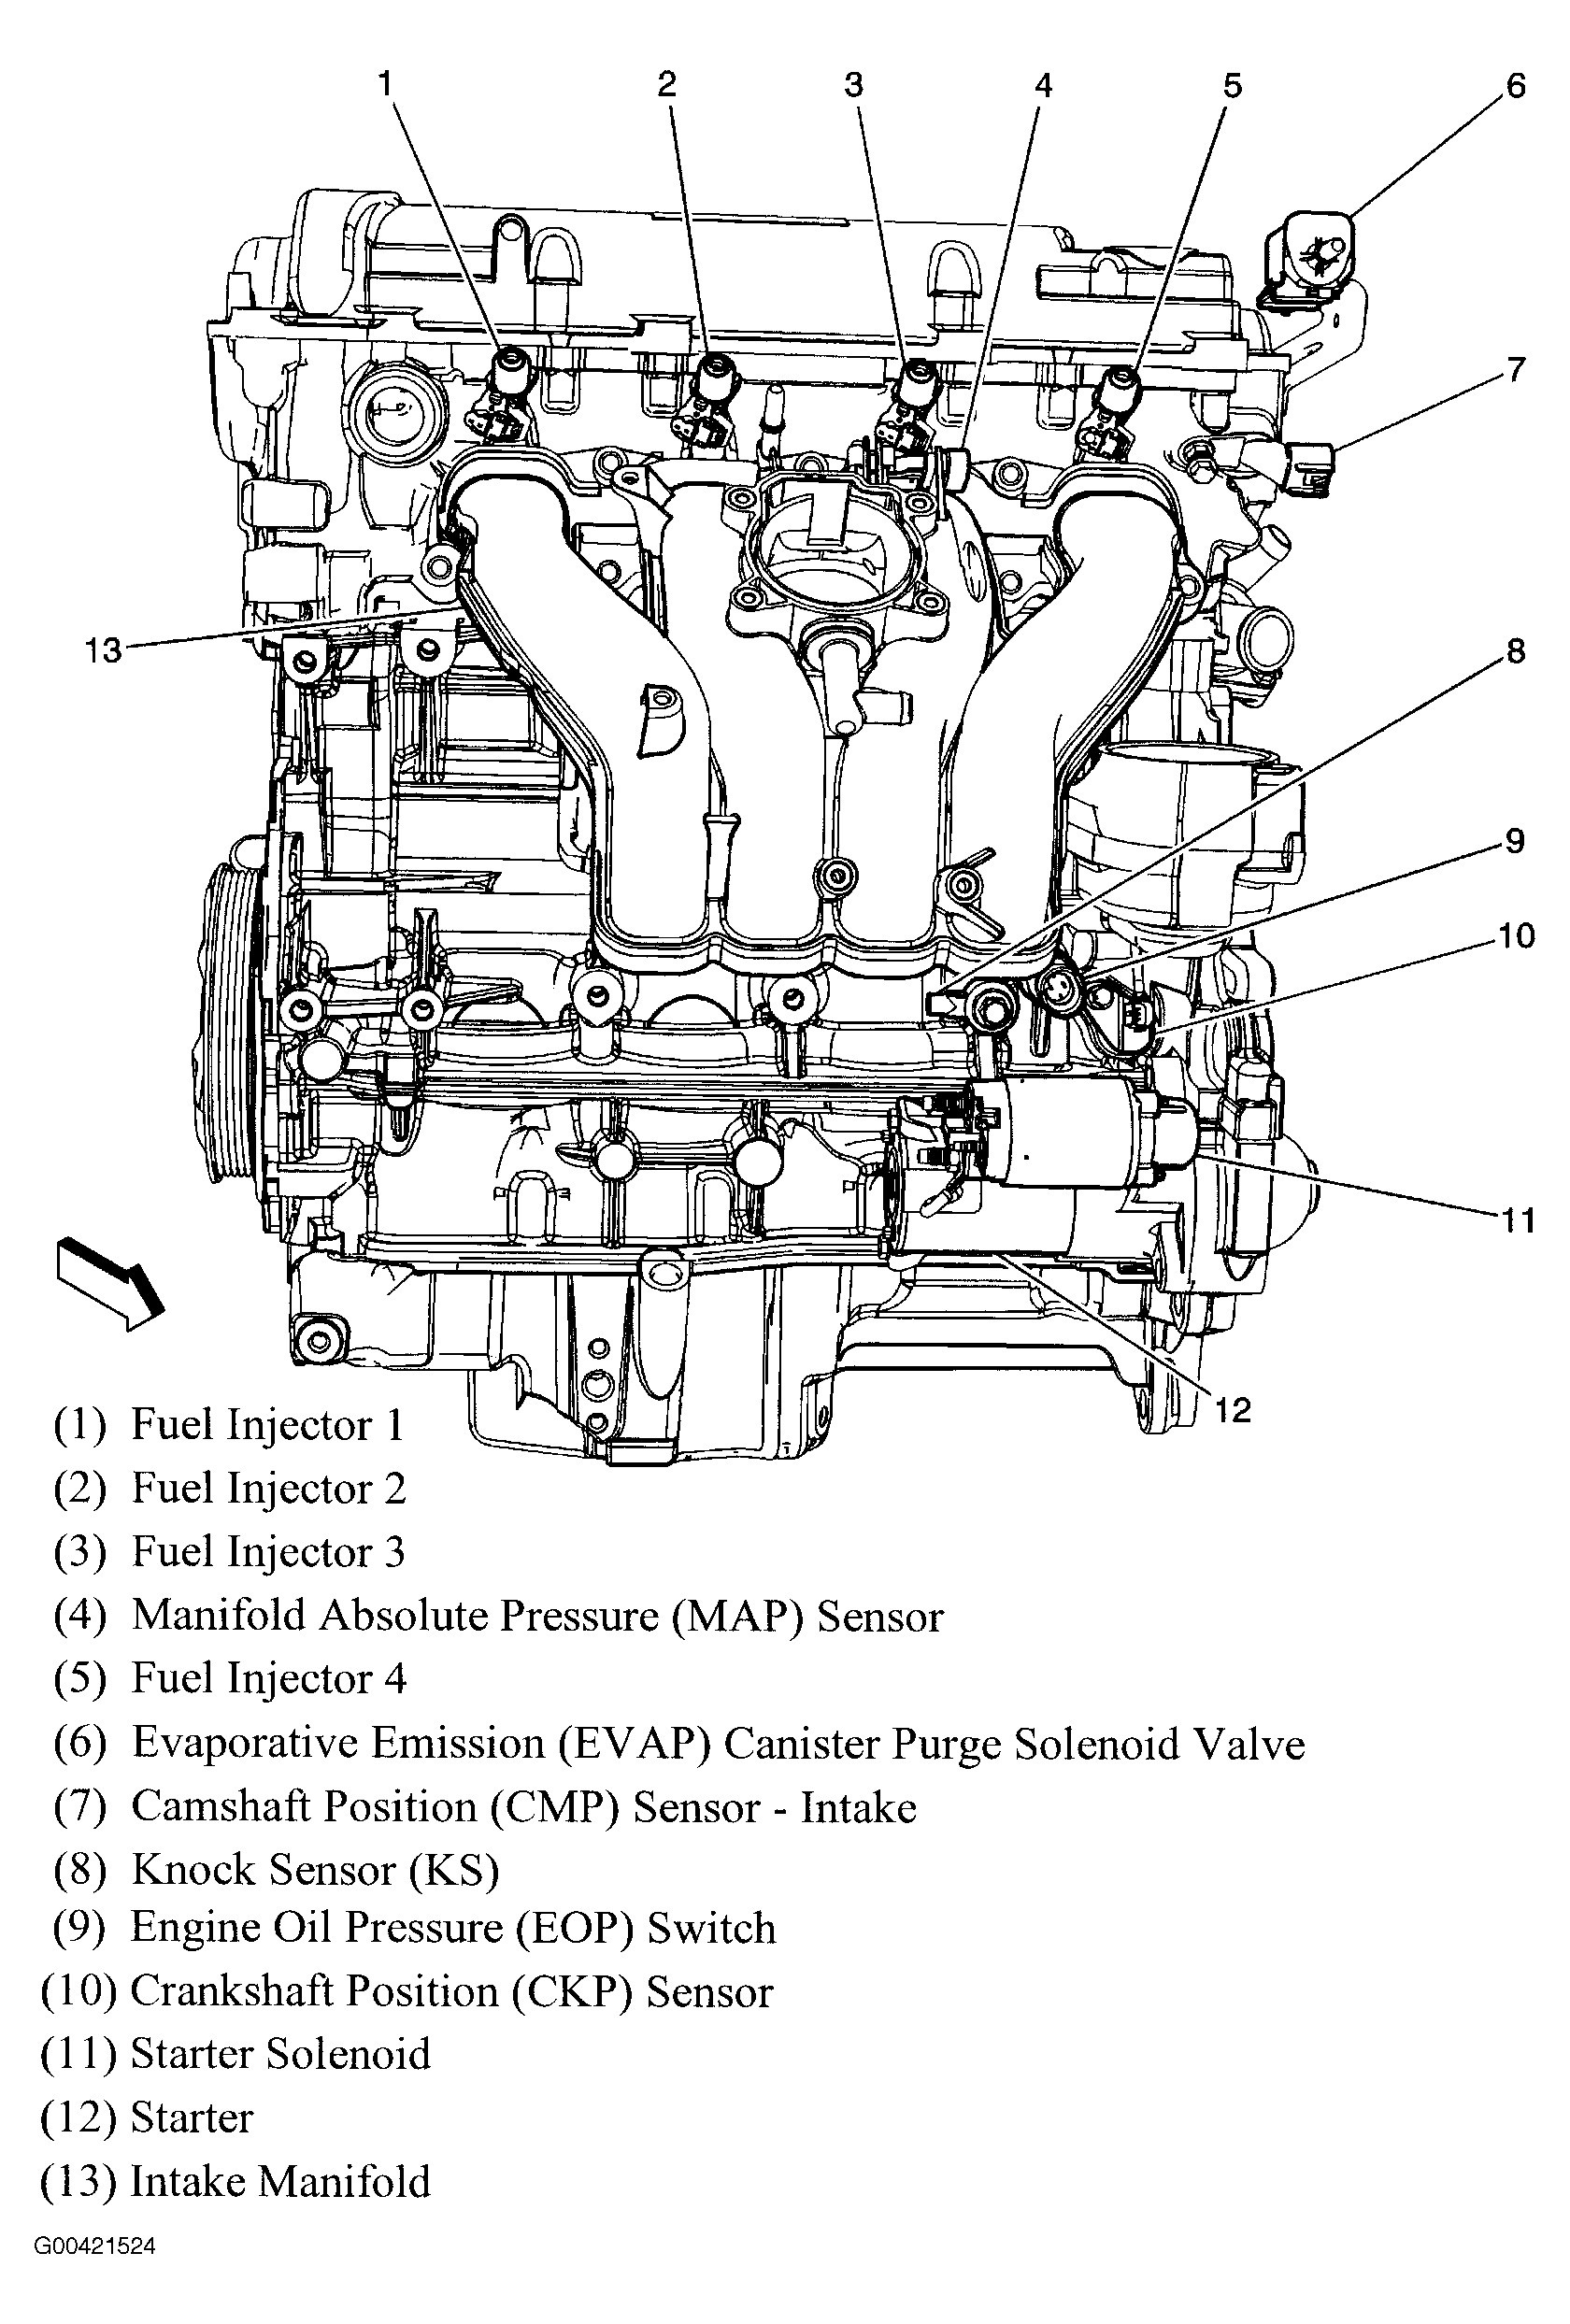 hight resolution of gm 3 8 engine diagram sensor location simple wiring schema chrysler 3 8 engine diagram 97 pontiac